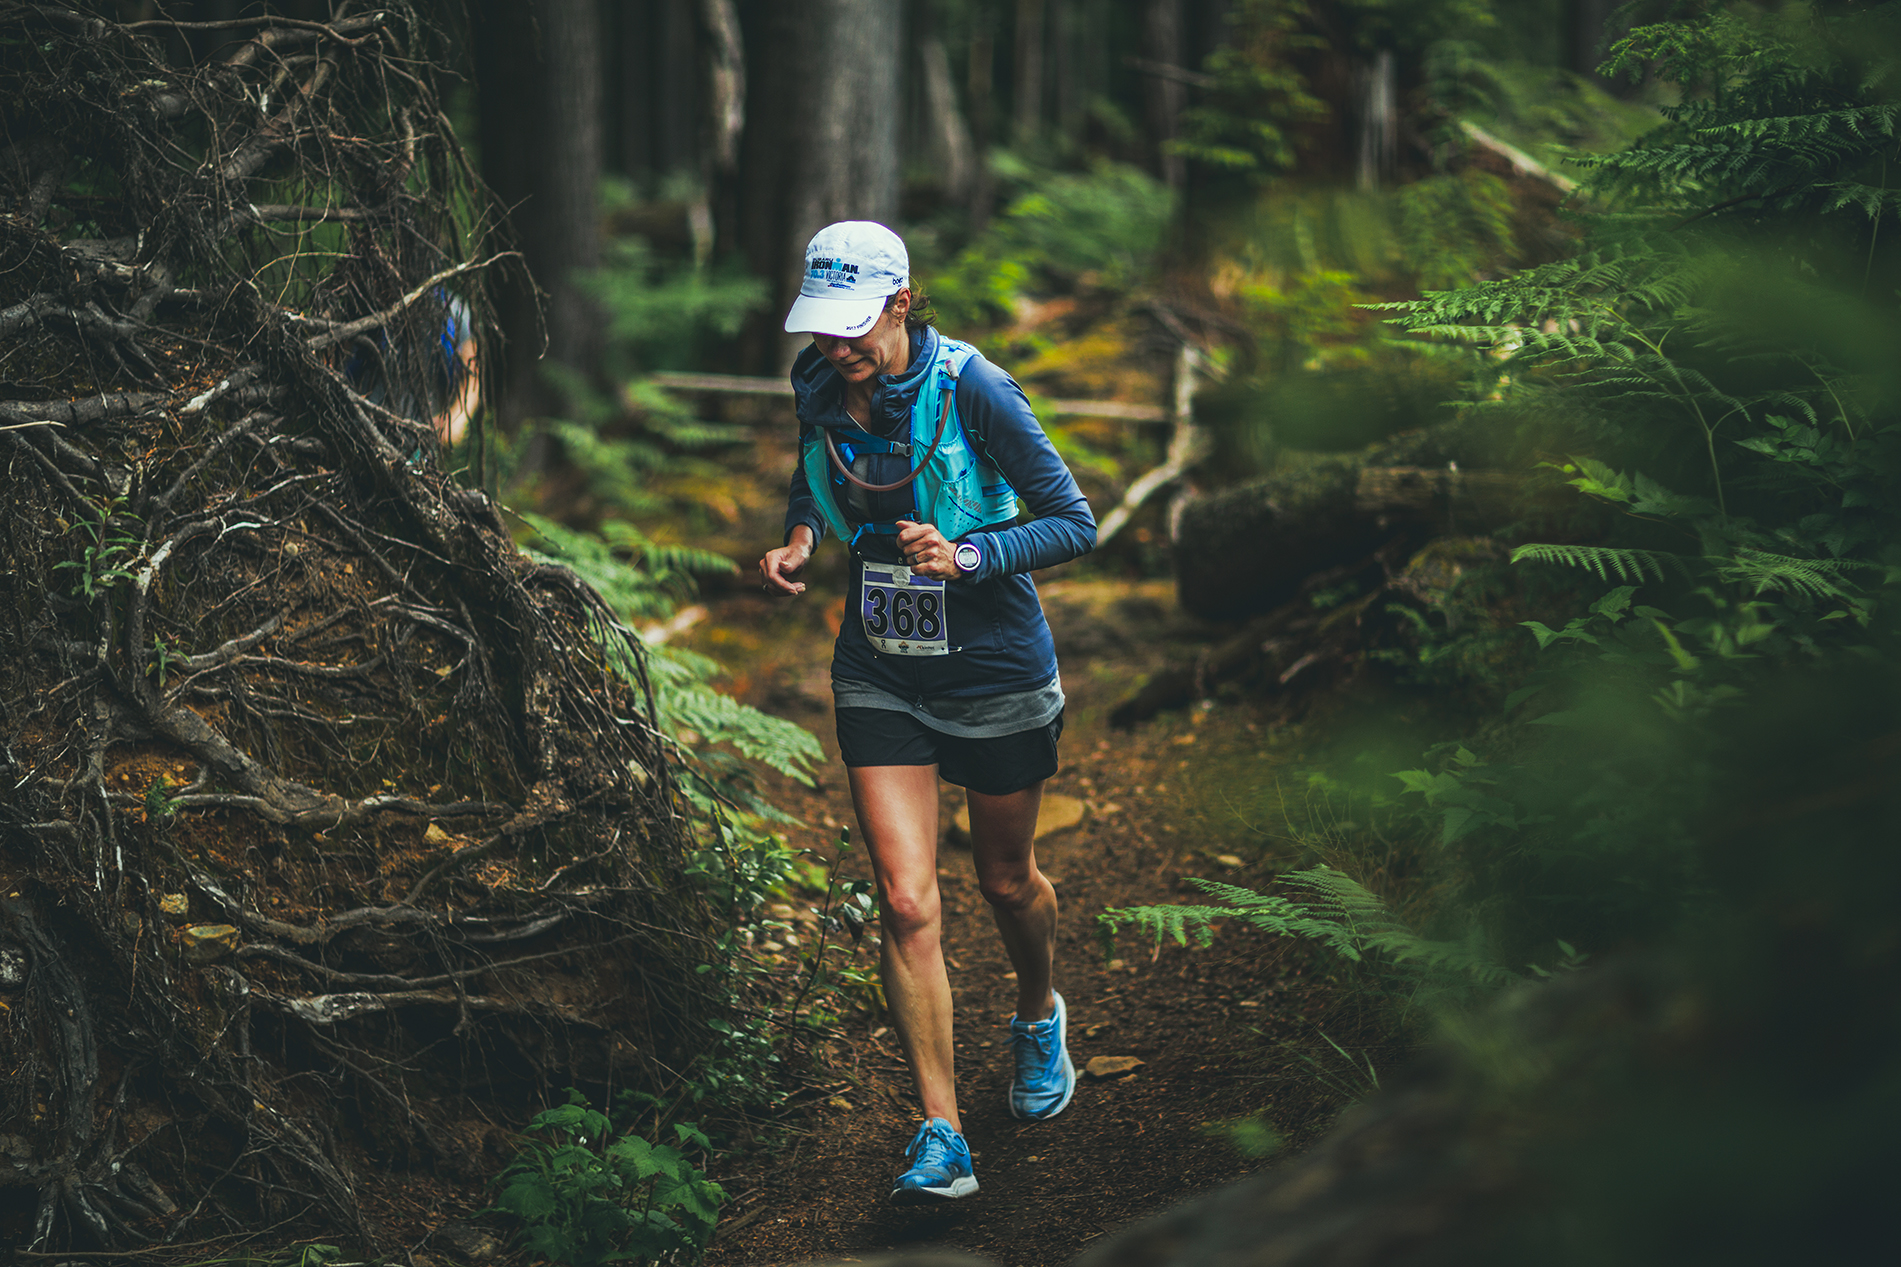 Fraser Valley Trail Races - Bear Mountain - IMG_2453 by Brice Ferre Studio - Vancouver Portrait Adventure and Athlete Photographer.jpg